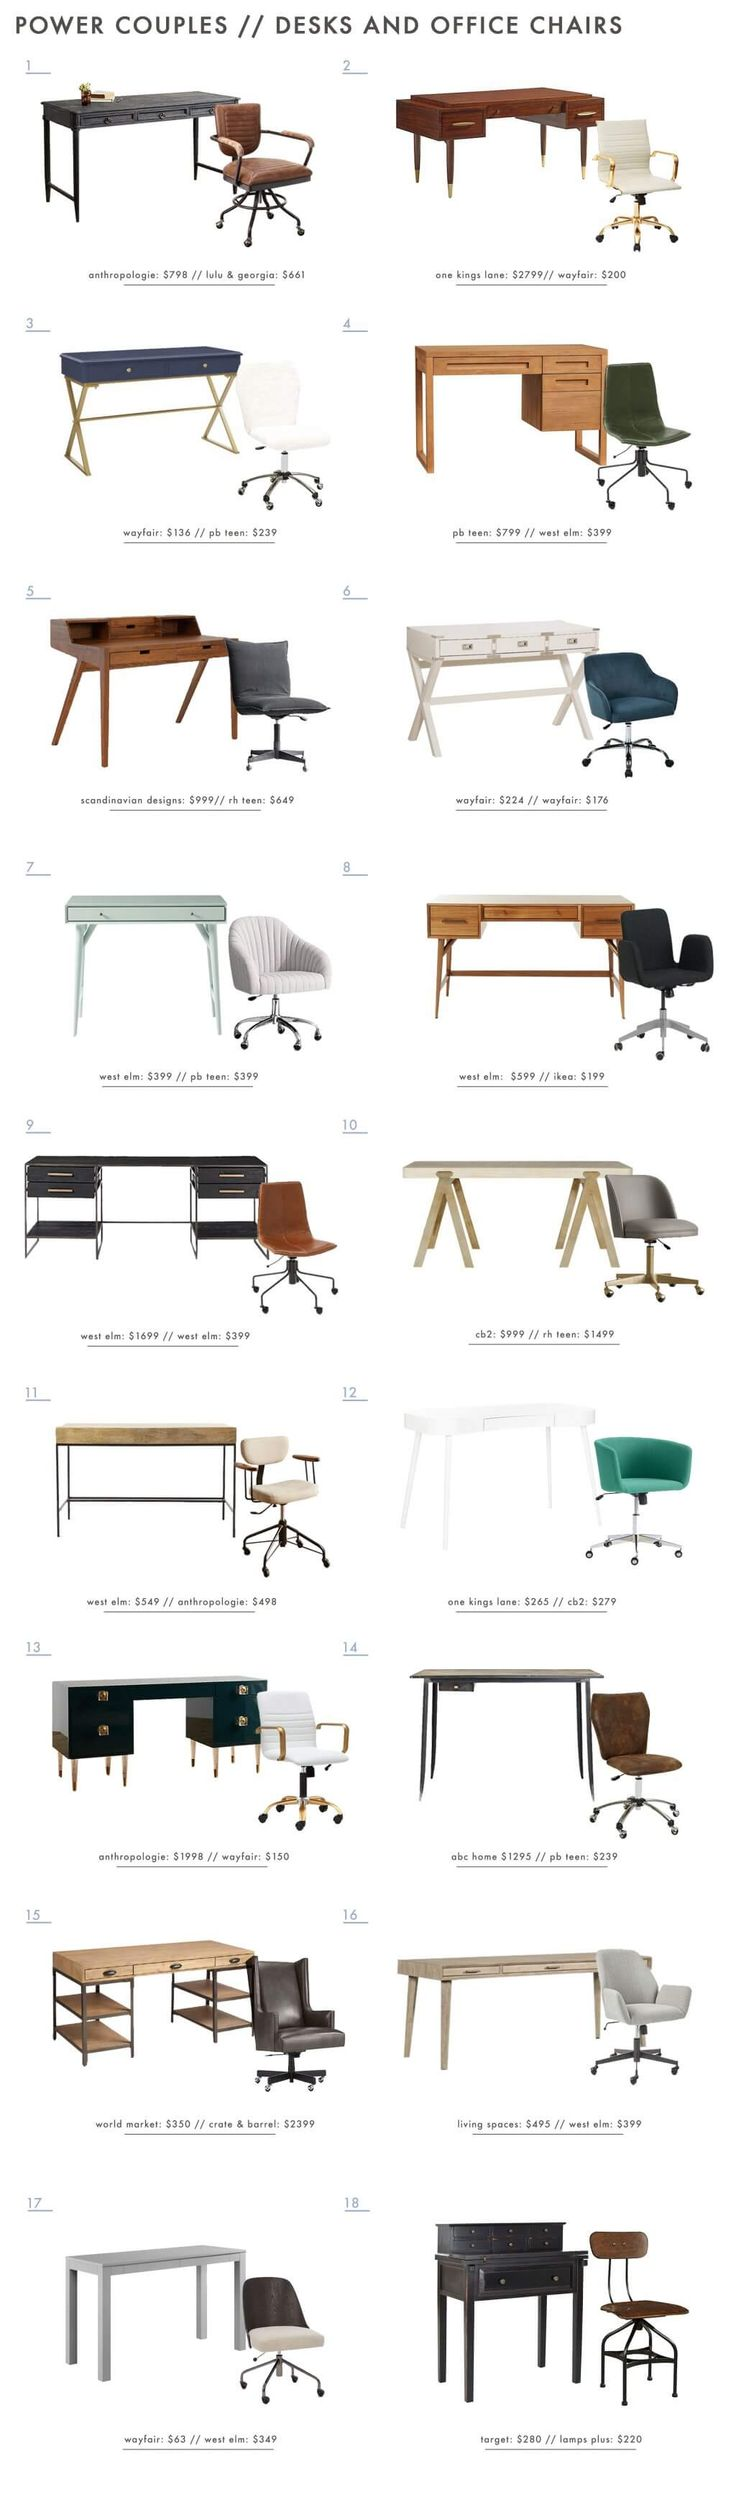 Power Couples: Desks and Office Chairs